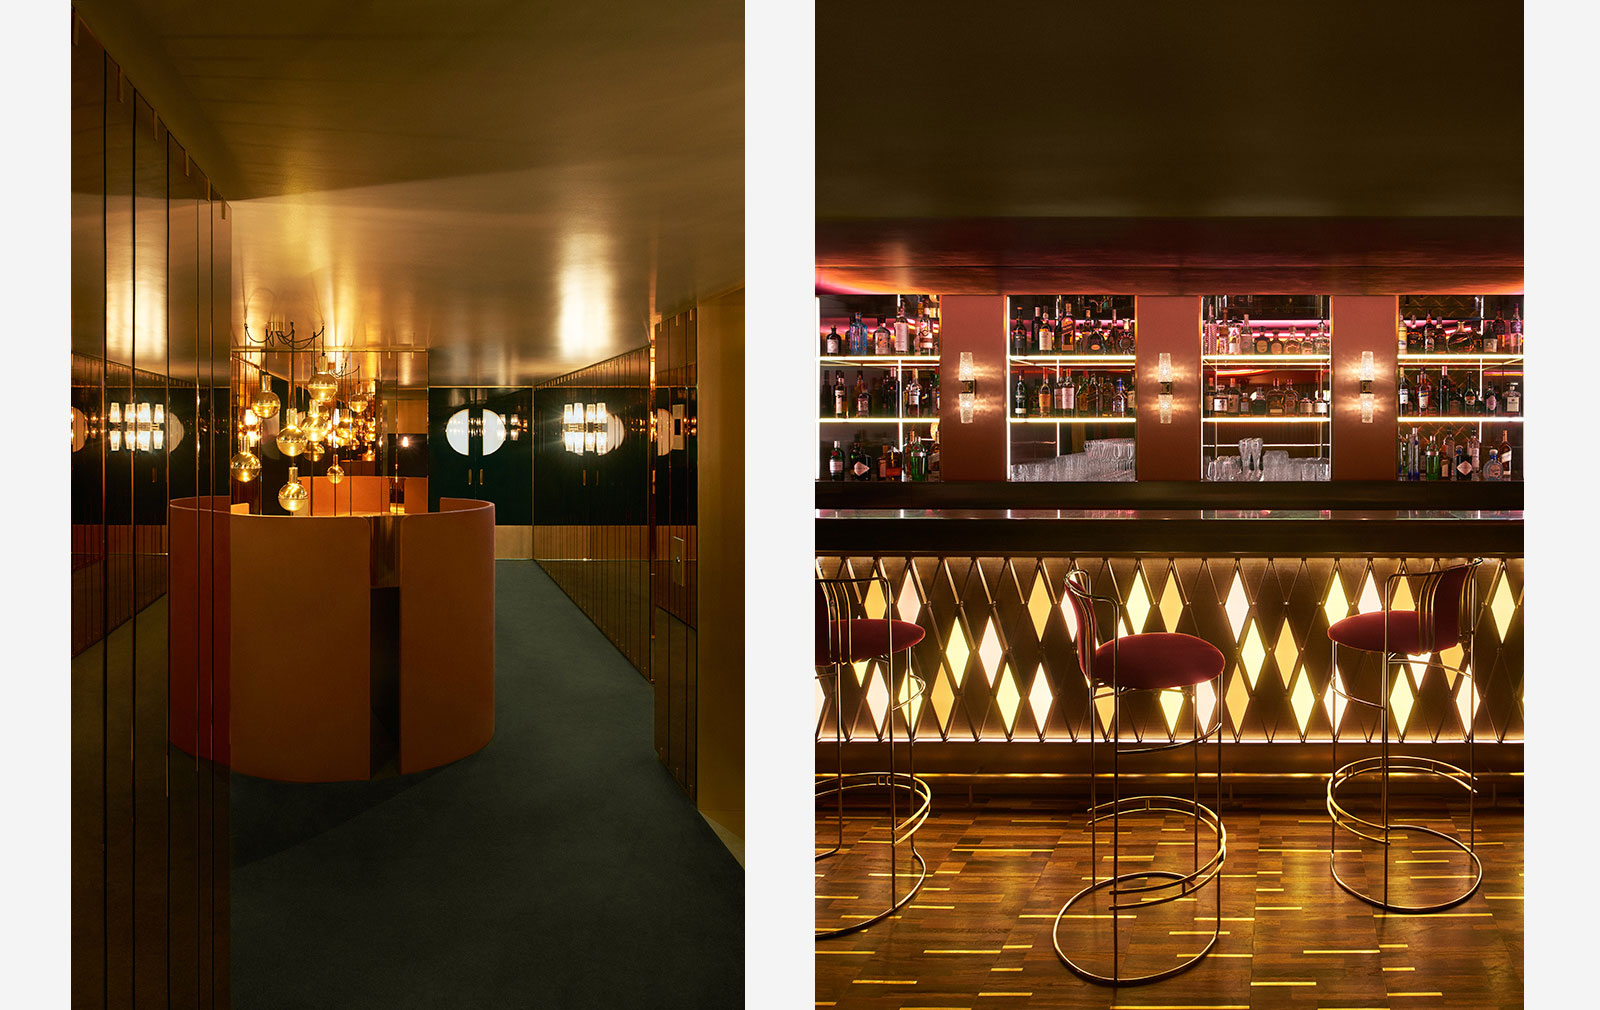 Leo's supperclub at The Arts Club in London, designed by Dimore Studio